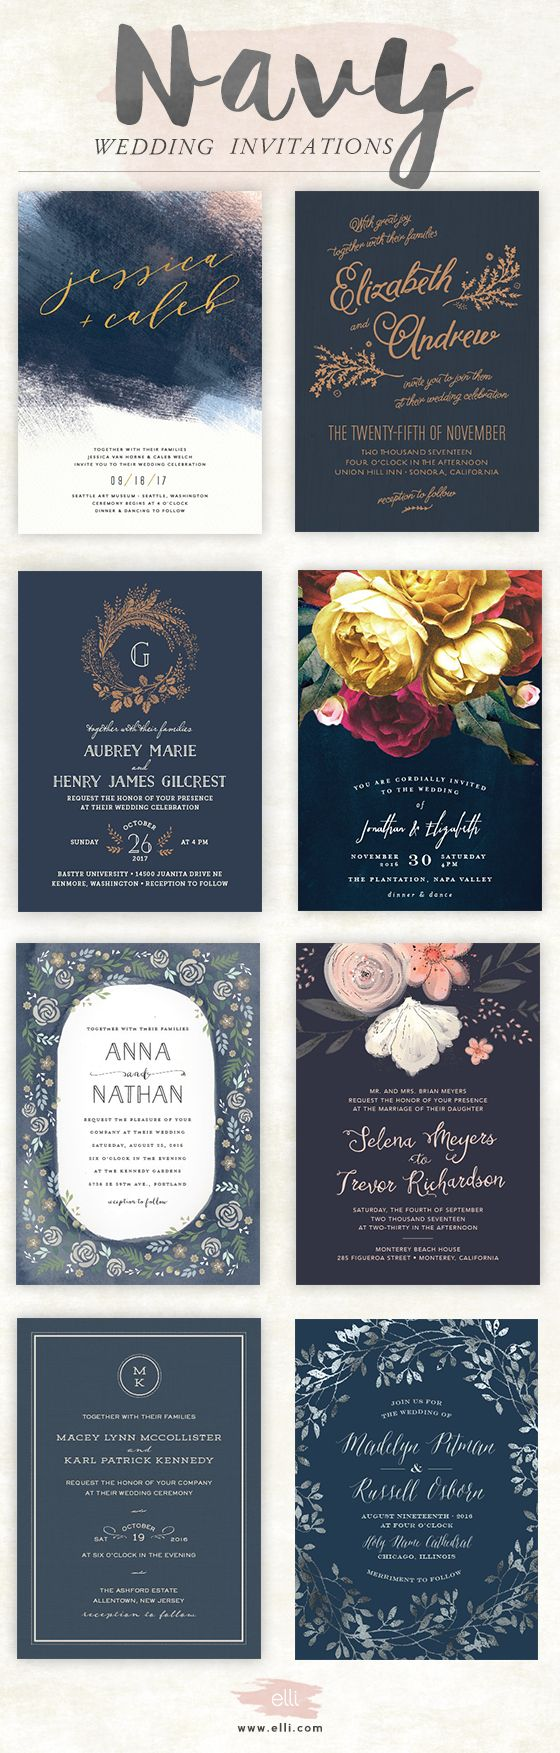 wedding invitation sample by email%0A Now trending  navy wedding invitations from Elli com